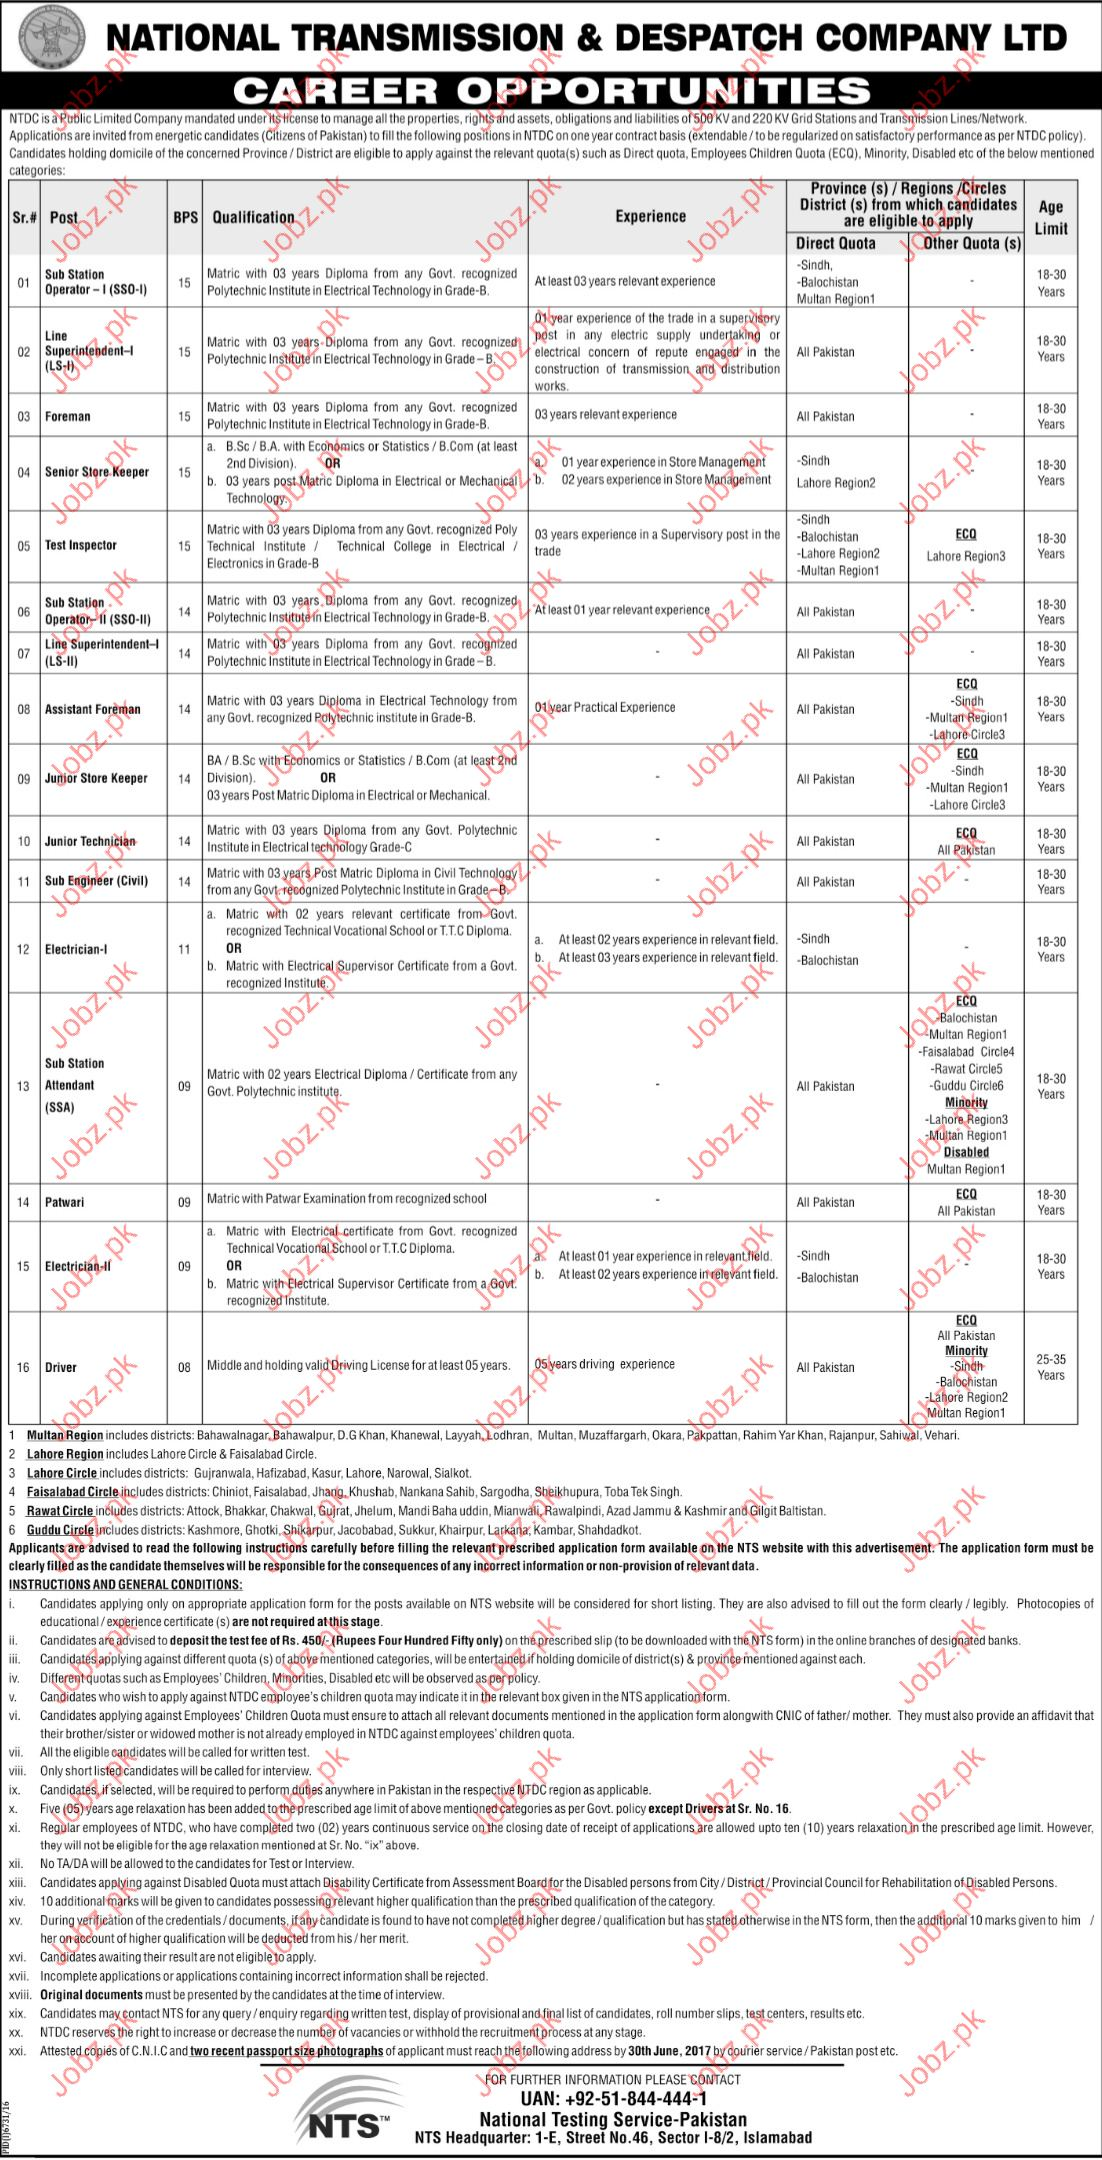 Admin Jobs In National Transmission & Despatch Company